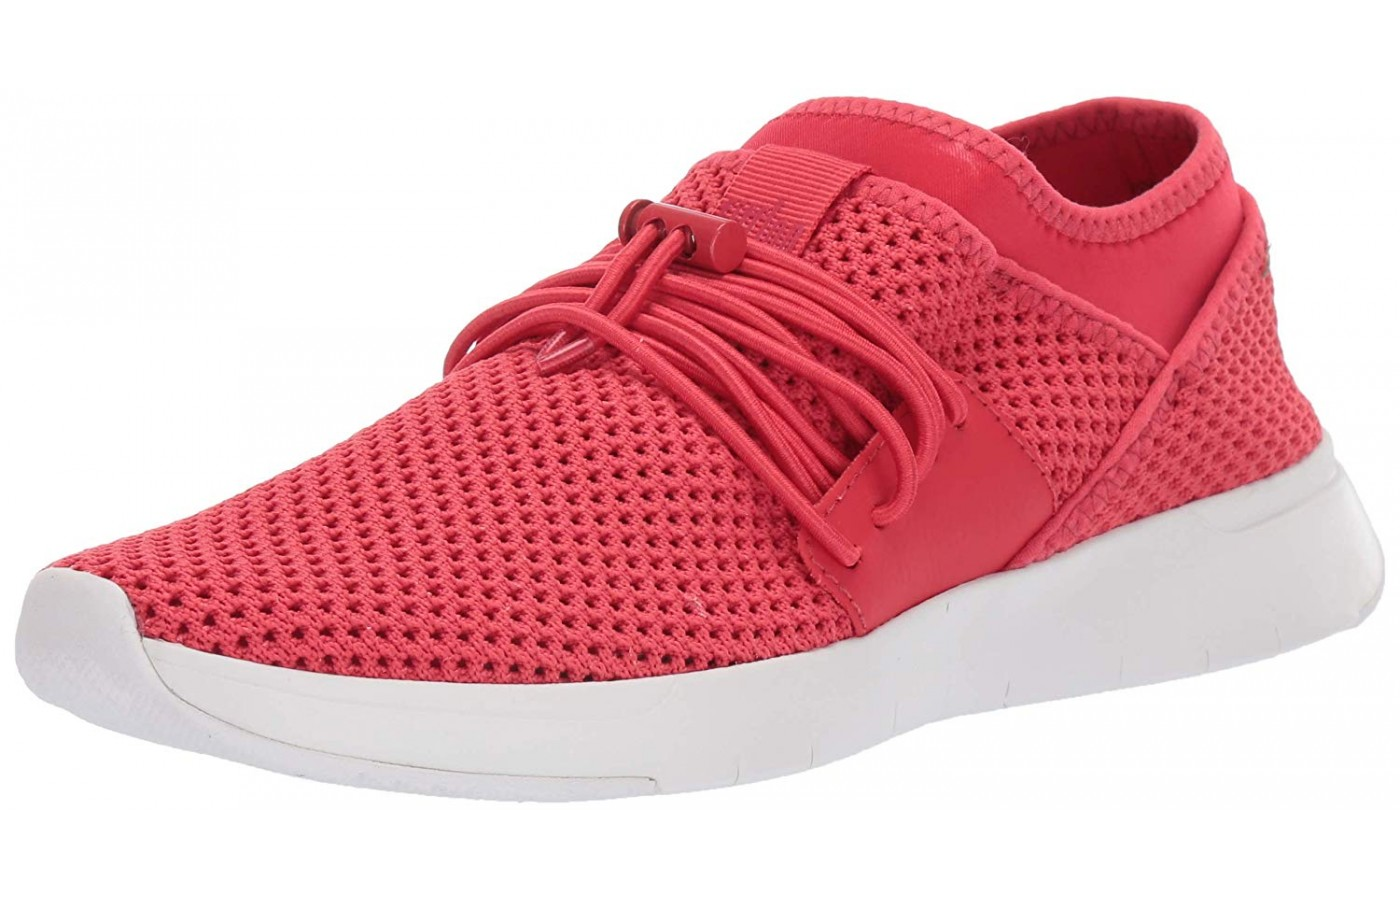 FitFlop Airmesh Lace-Up Angled